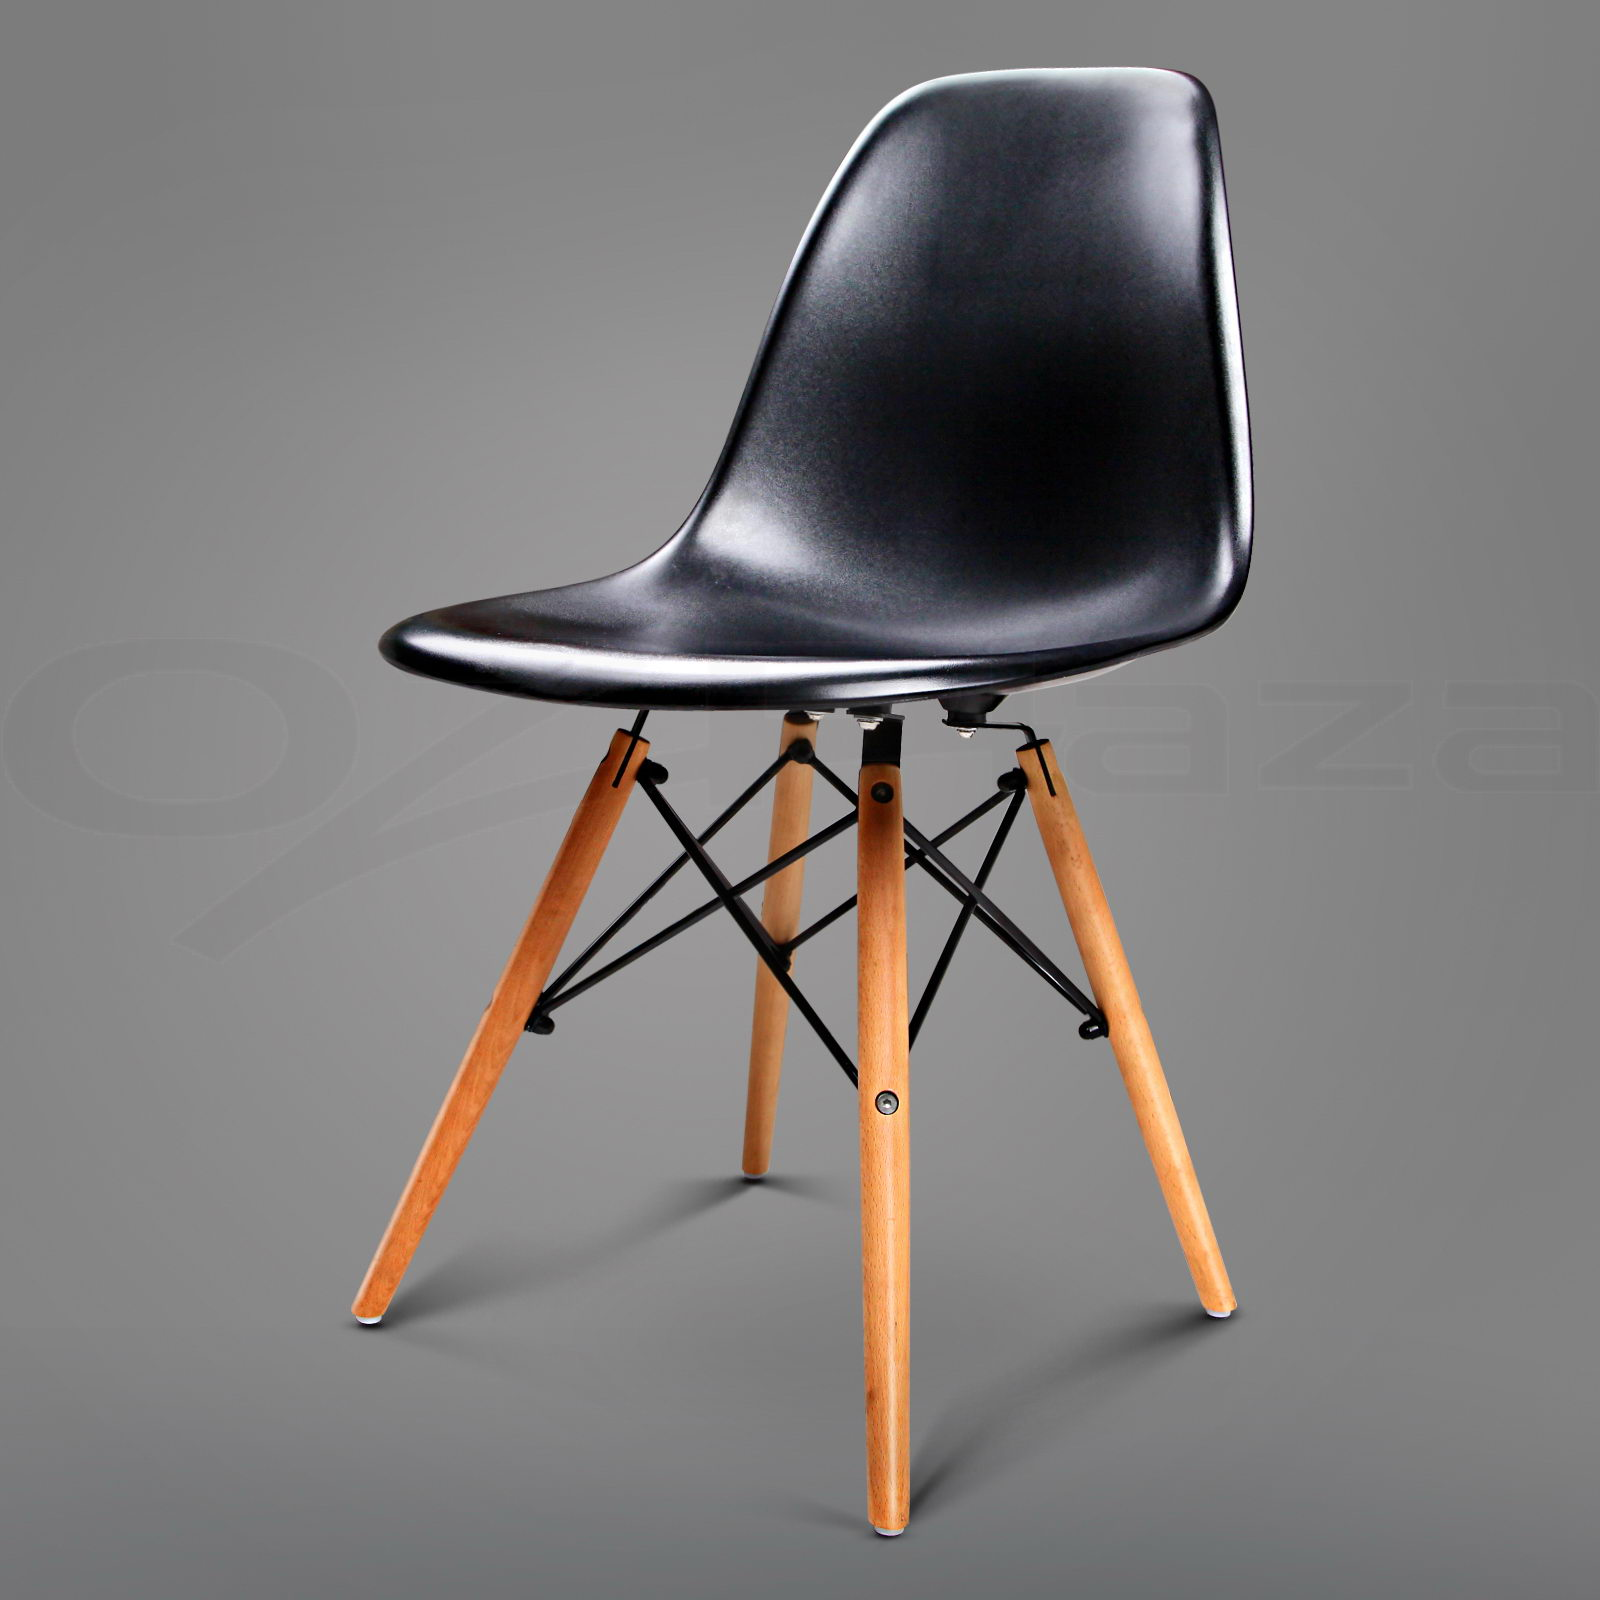 replica eames dsw dining chair daw armchair padded fabric abs ebay